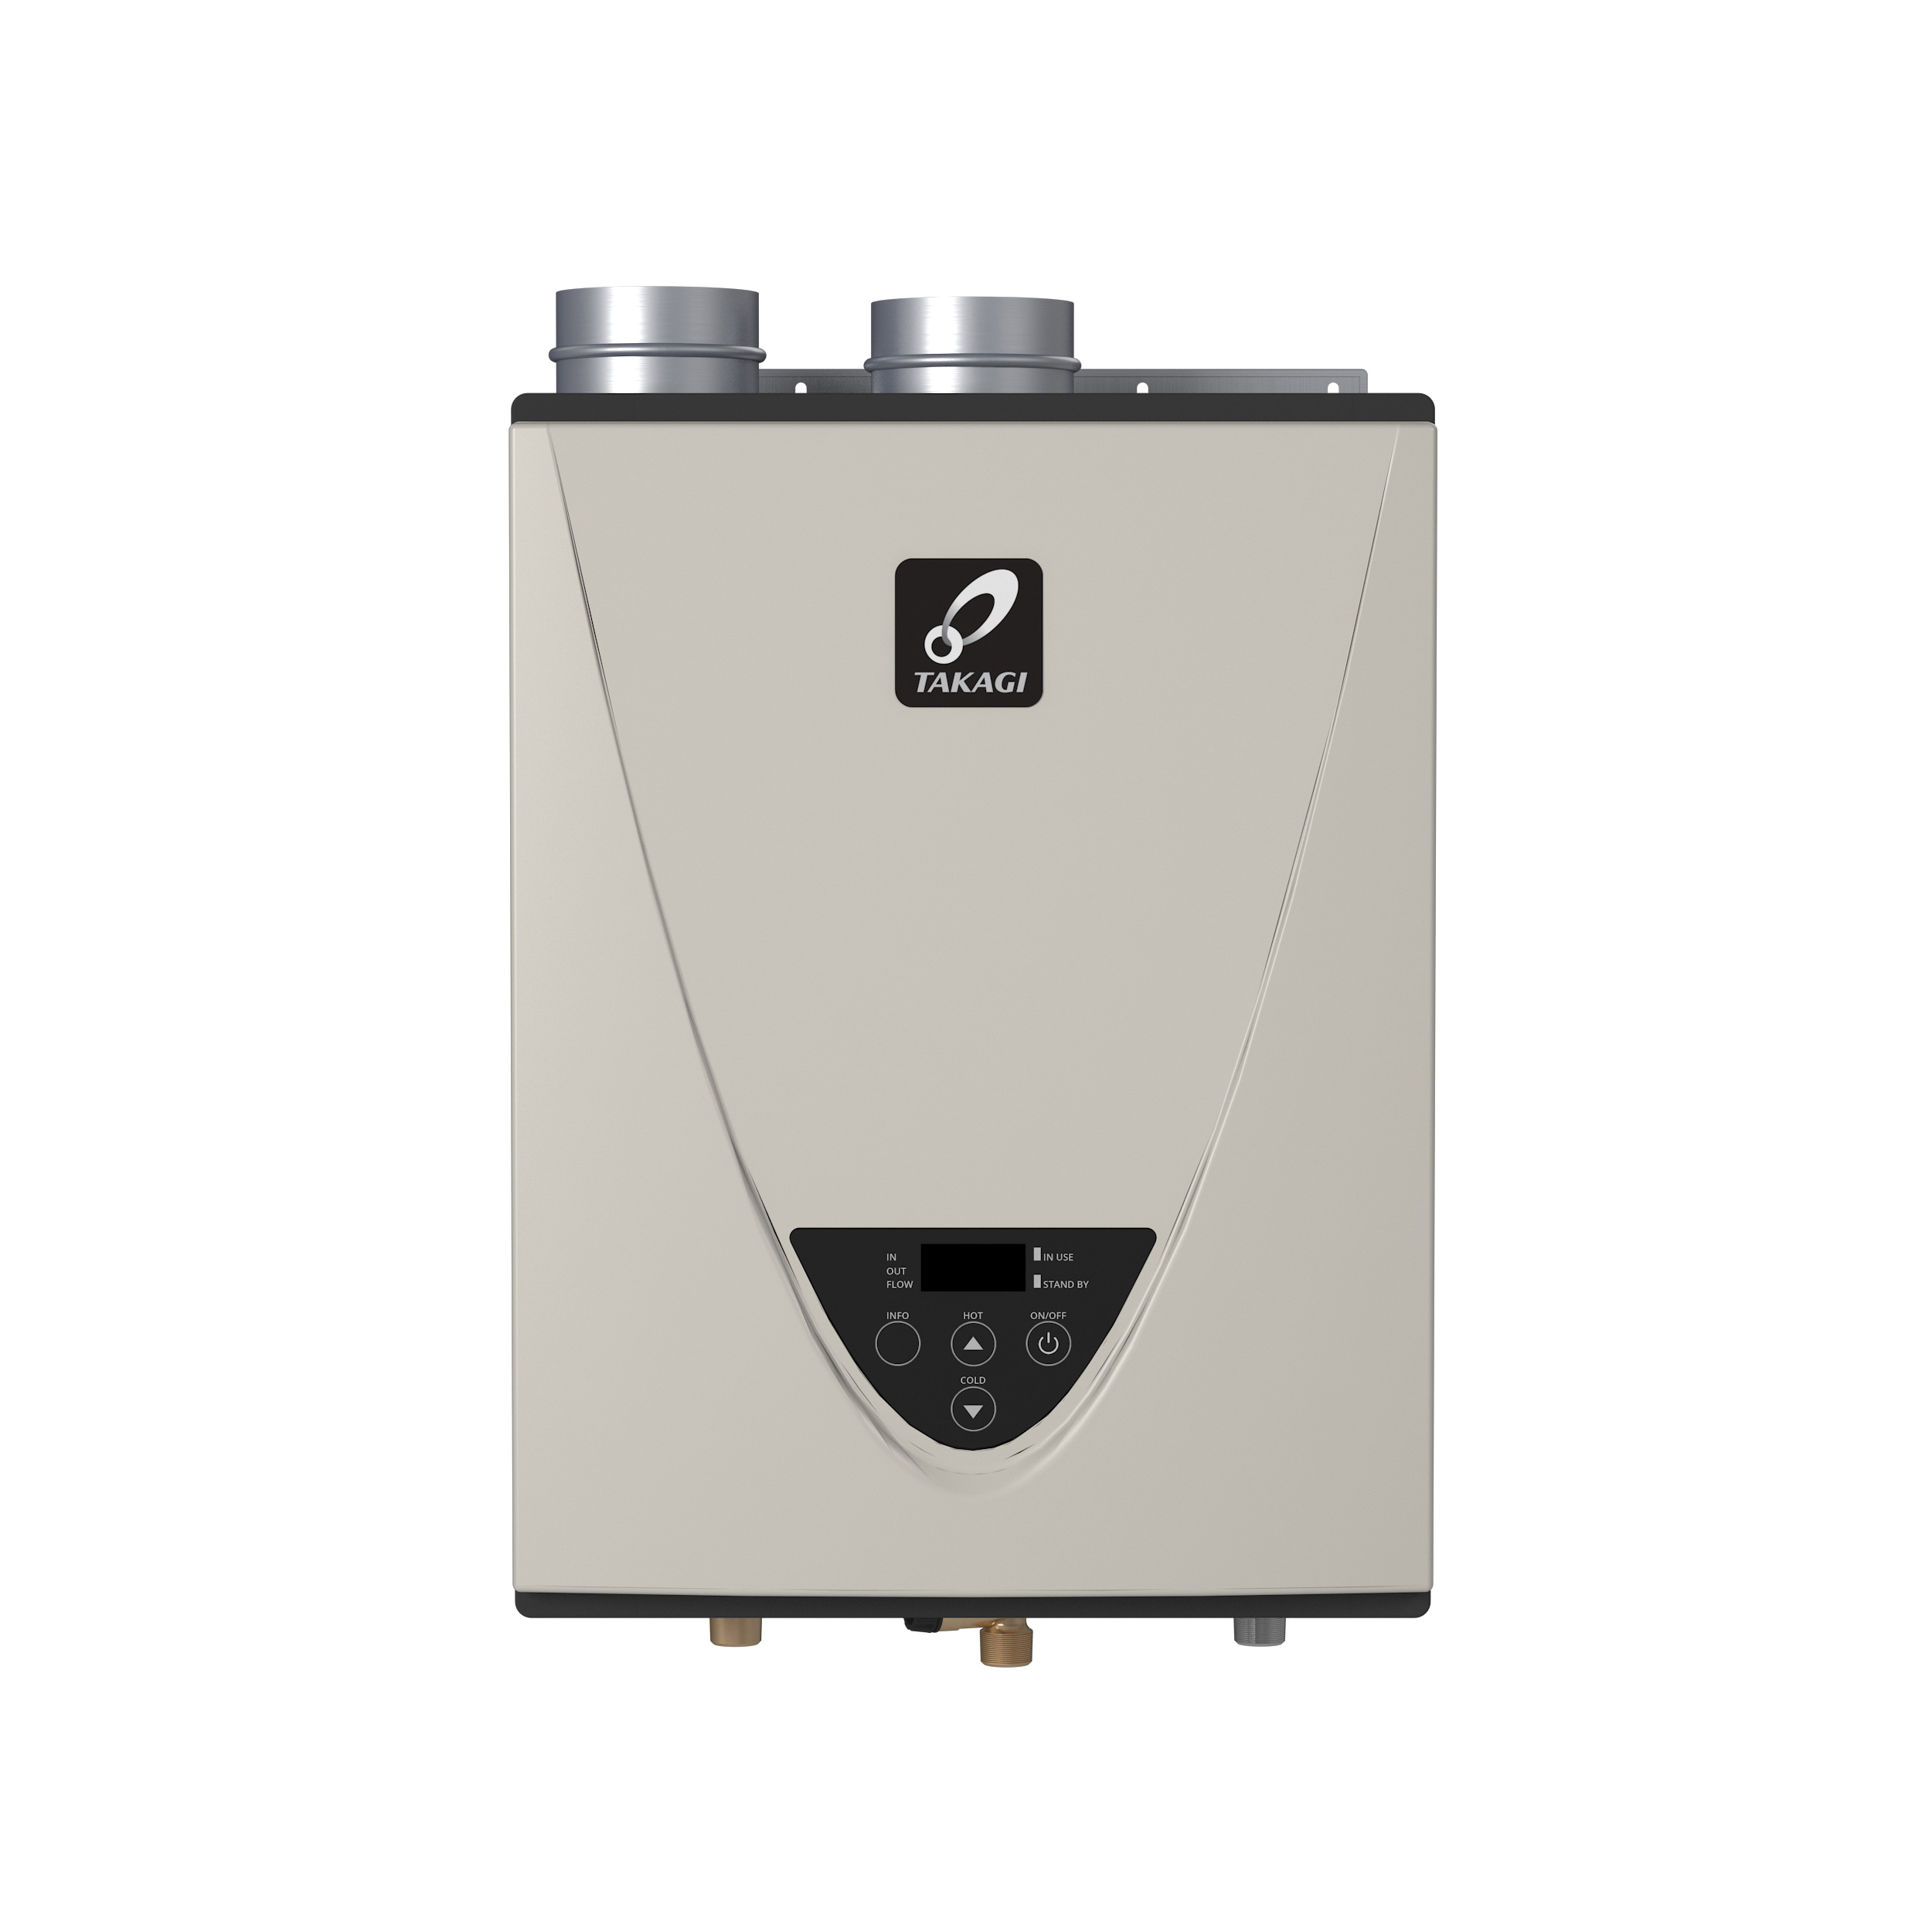 Takagi TH3SDVLP H3S Tankless Water Heater, Liquid Propane Fuel, 180000 Btu/hr Heating, Indoor/Outdoor: Indoor, Condensing/Non Condensing: Condensing, 8 gpm, 4 in Direct Vent, 0.95, Commercial/Residential/Dual: Dual, Ultra Low NOx: Yes